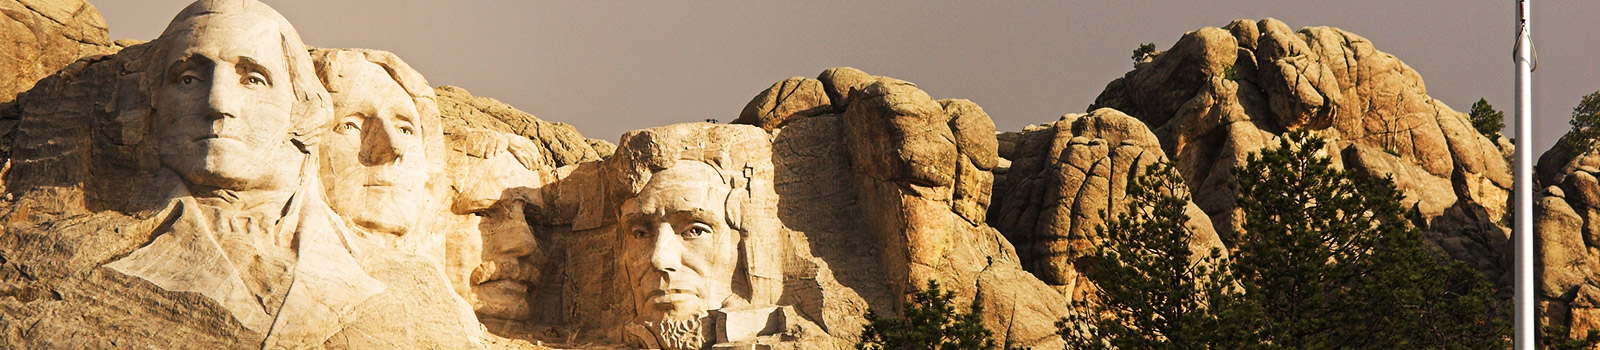 FAQ - Mount Rushmore National Memorial